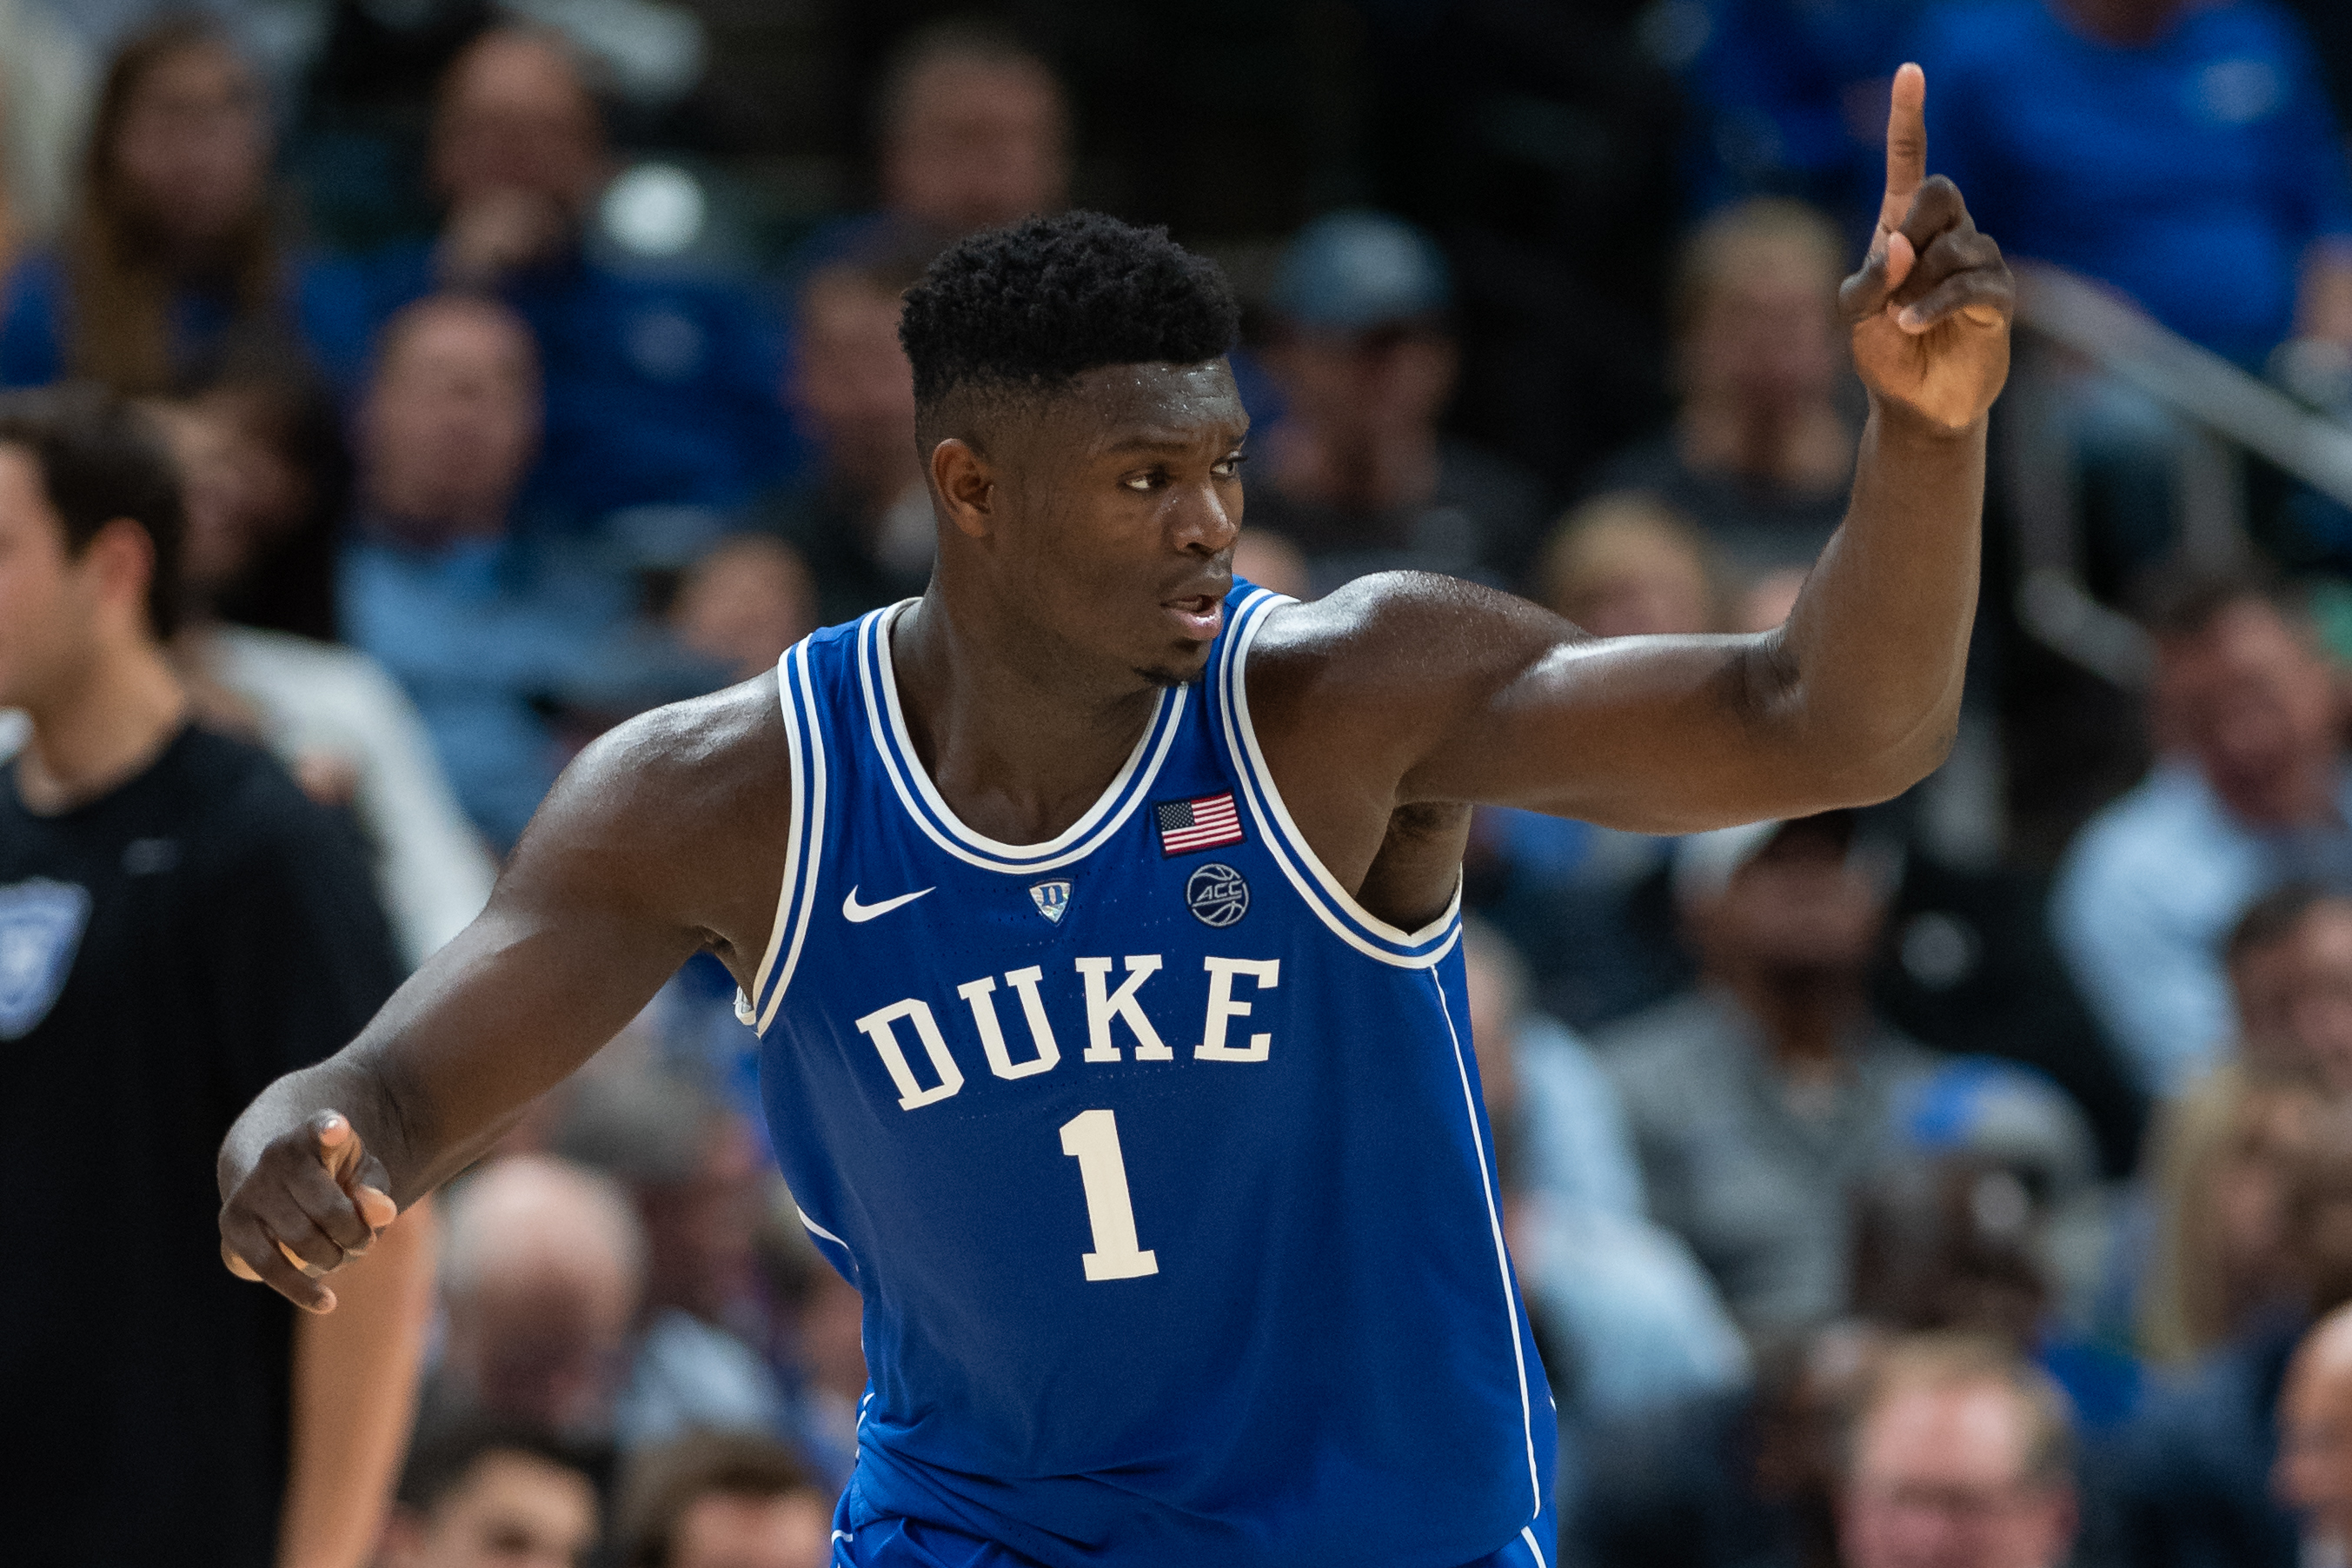 November 7, 2018 - Indianapolis, IN, U.S. - INDIANAPOLIS, IN - NOVEMBER 06: Duke Blue Devils forward Zion Williamson (1) celebrates on the court during the State Farm Champions Classic basketball game between the Duke Blue Devils and Kentucky Wildcats on November 6, 2018, at Bankers Life Fieldhouse in Indianapolis, IN. (Photo by Zach Bolinger/Icon Sportswire) (Credit Image: © Zach Bolinger/Icon SMI via ZUMA Press)